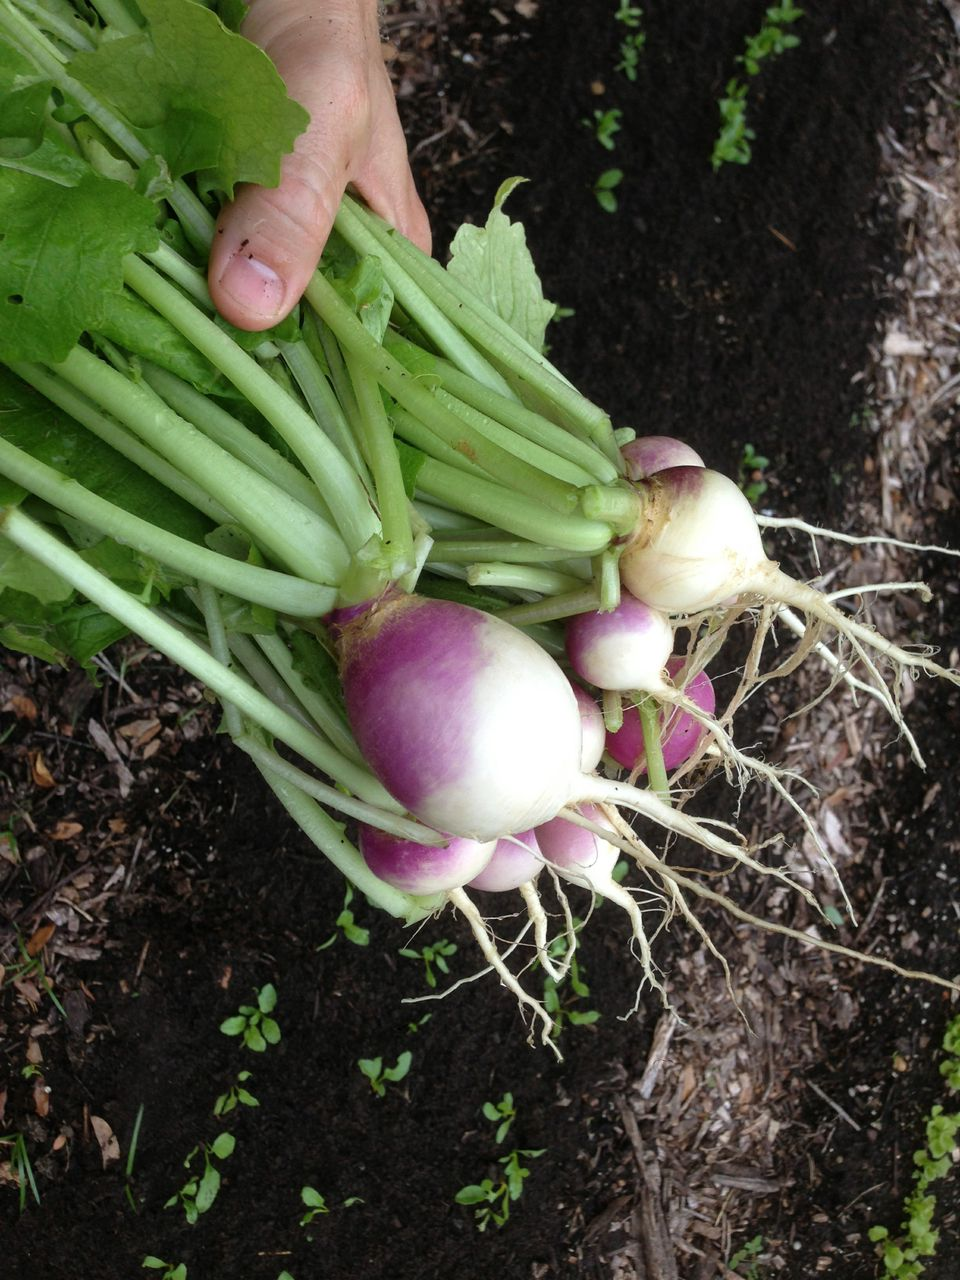 local turnips